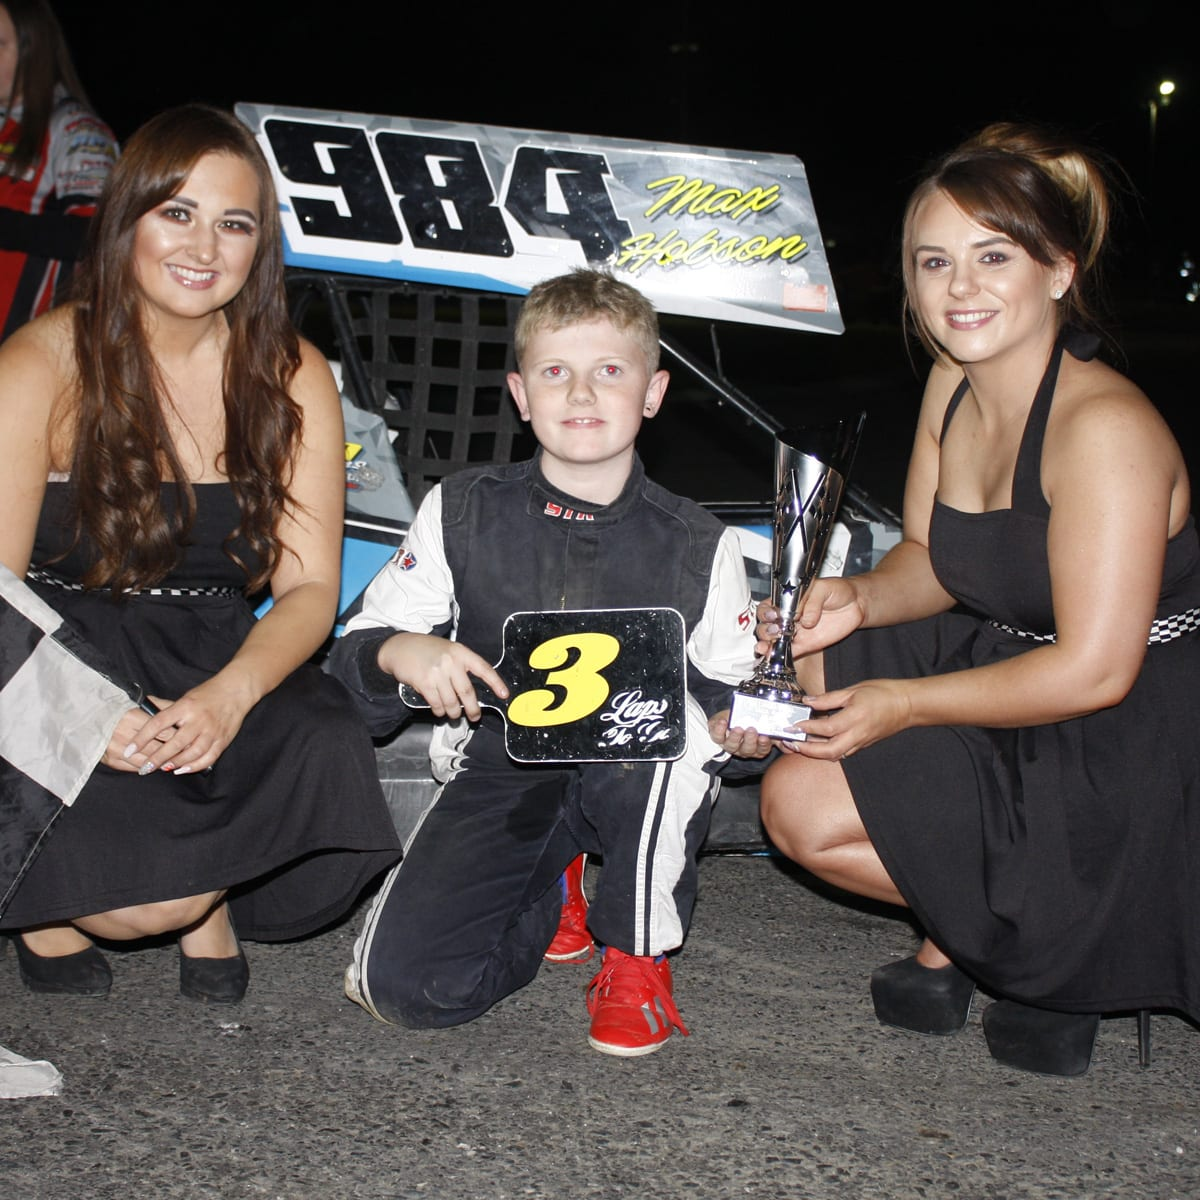 Max Hobson won all three races in the Ninja Karts at Tullyroan on Saturday night in a meeting sponsored by Ray McGrath Transport and Cherry Drainage Pipes